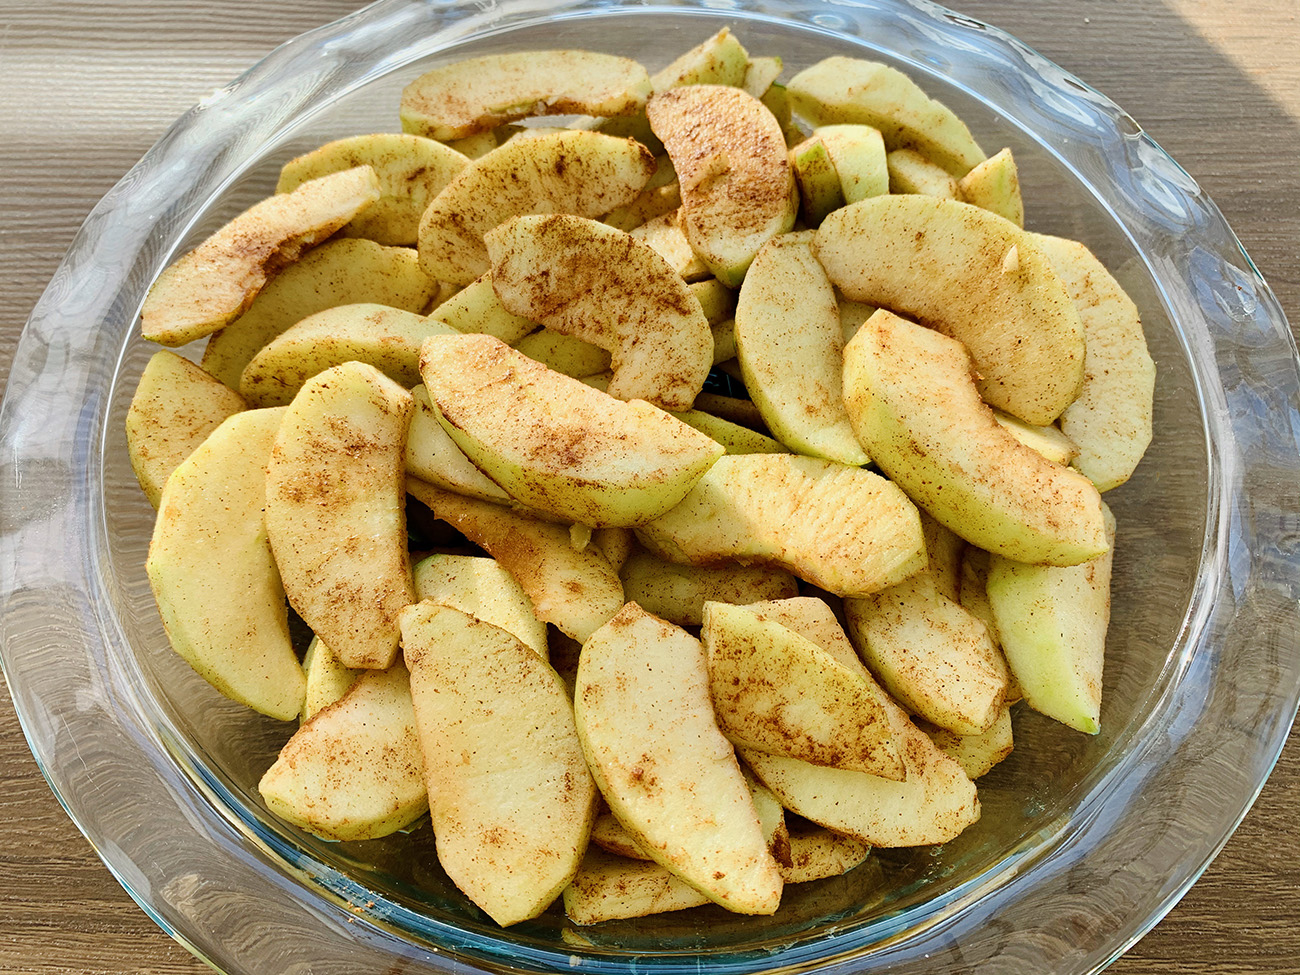 Granny Smith Apple Slices with spices in a pie dish